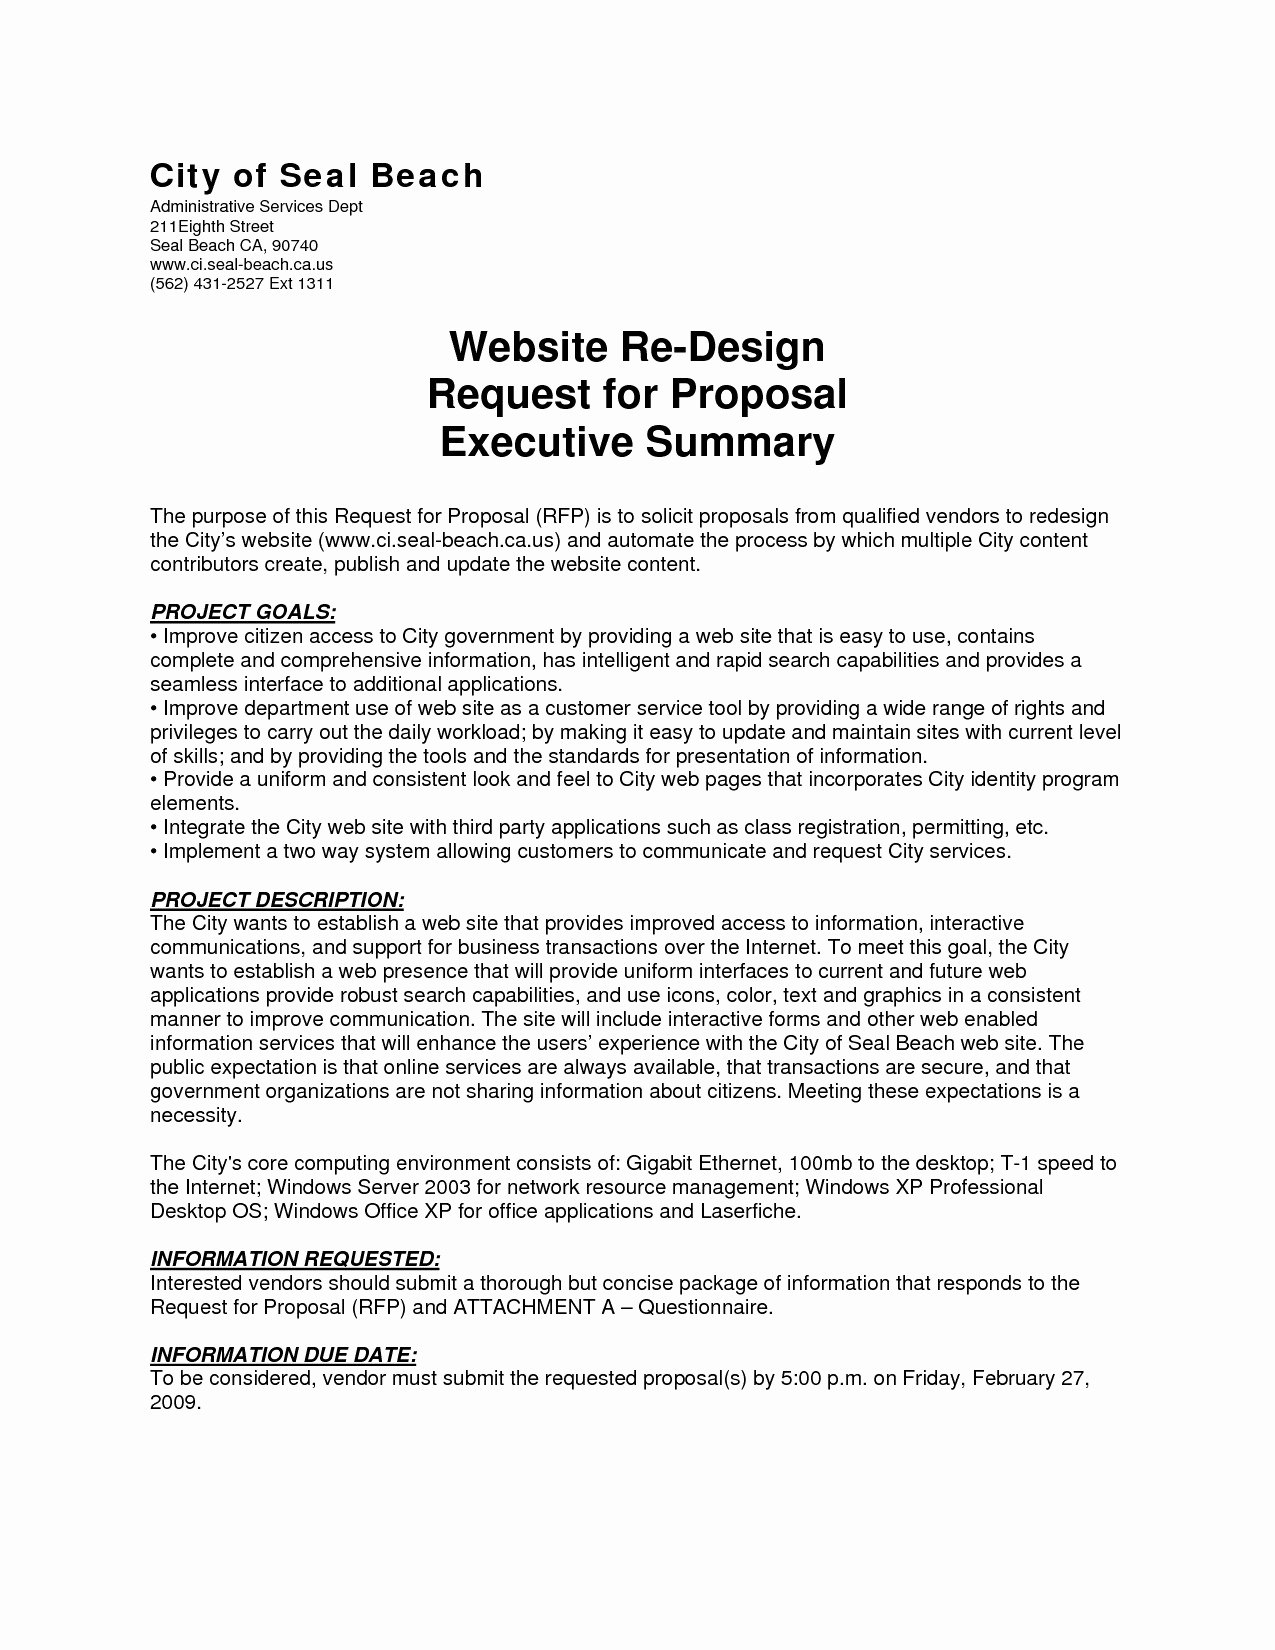 Sample Of Executive Summary Beautiful Executive Summary Cover Letter Pics – Executive Cover